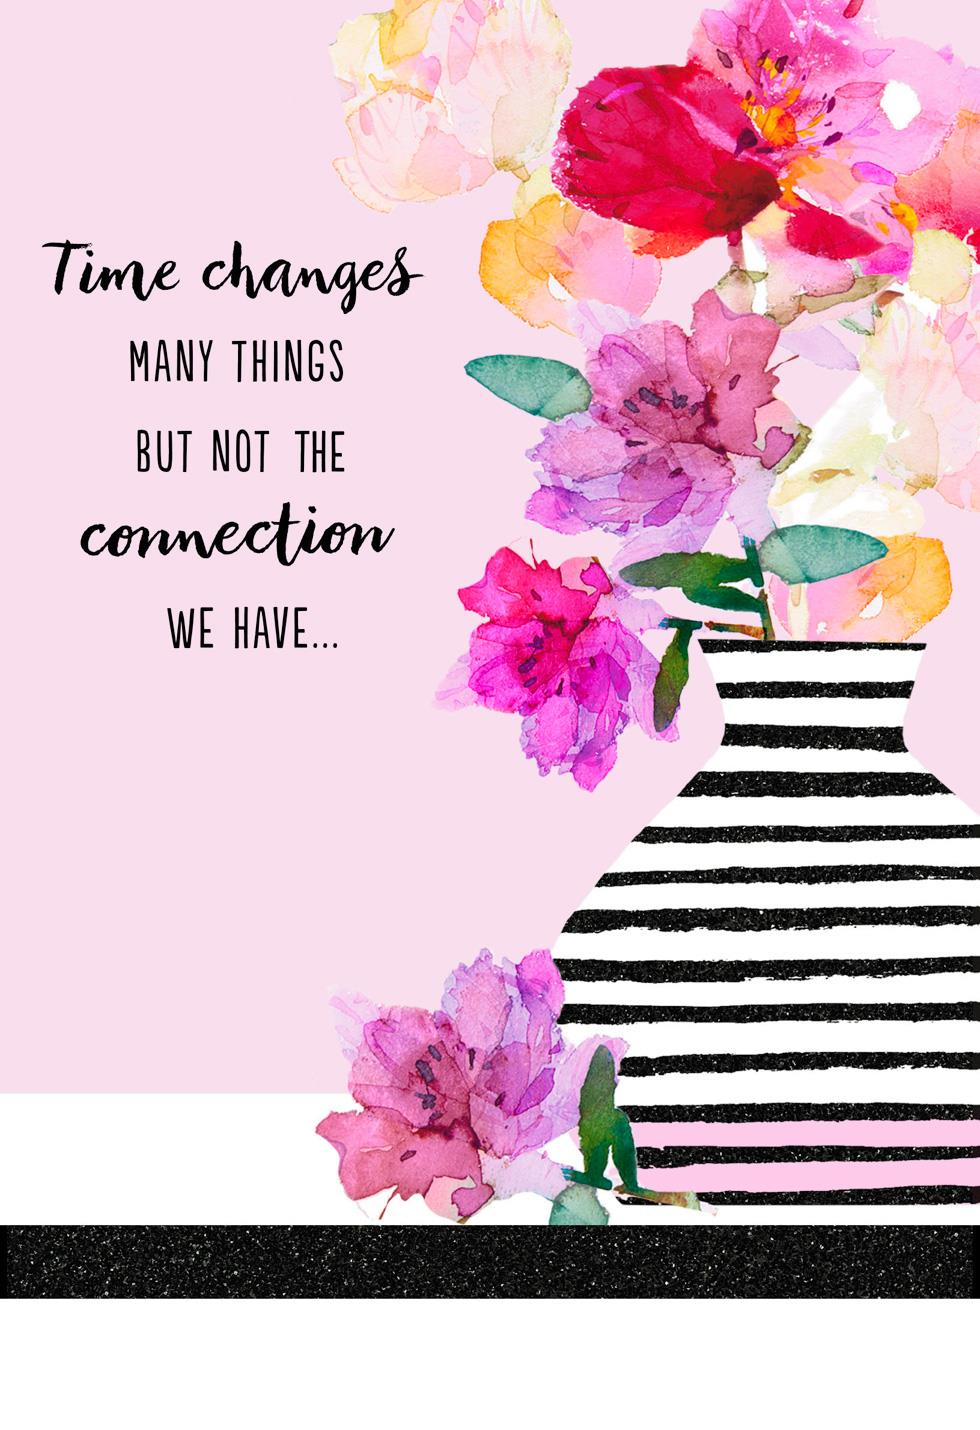 Time changes mothers day card for ex daughter in law greeting time changes mothers day card for ex daughter in law greeting cards hallmark m4hsunfo